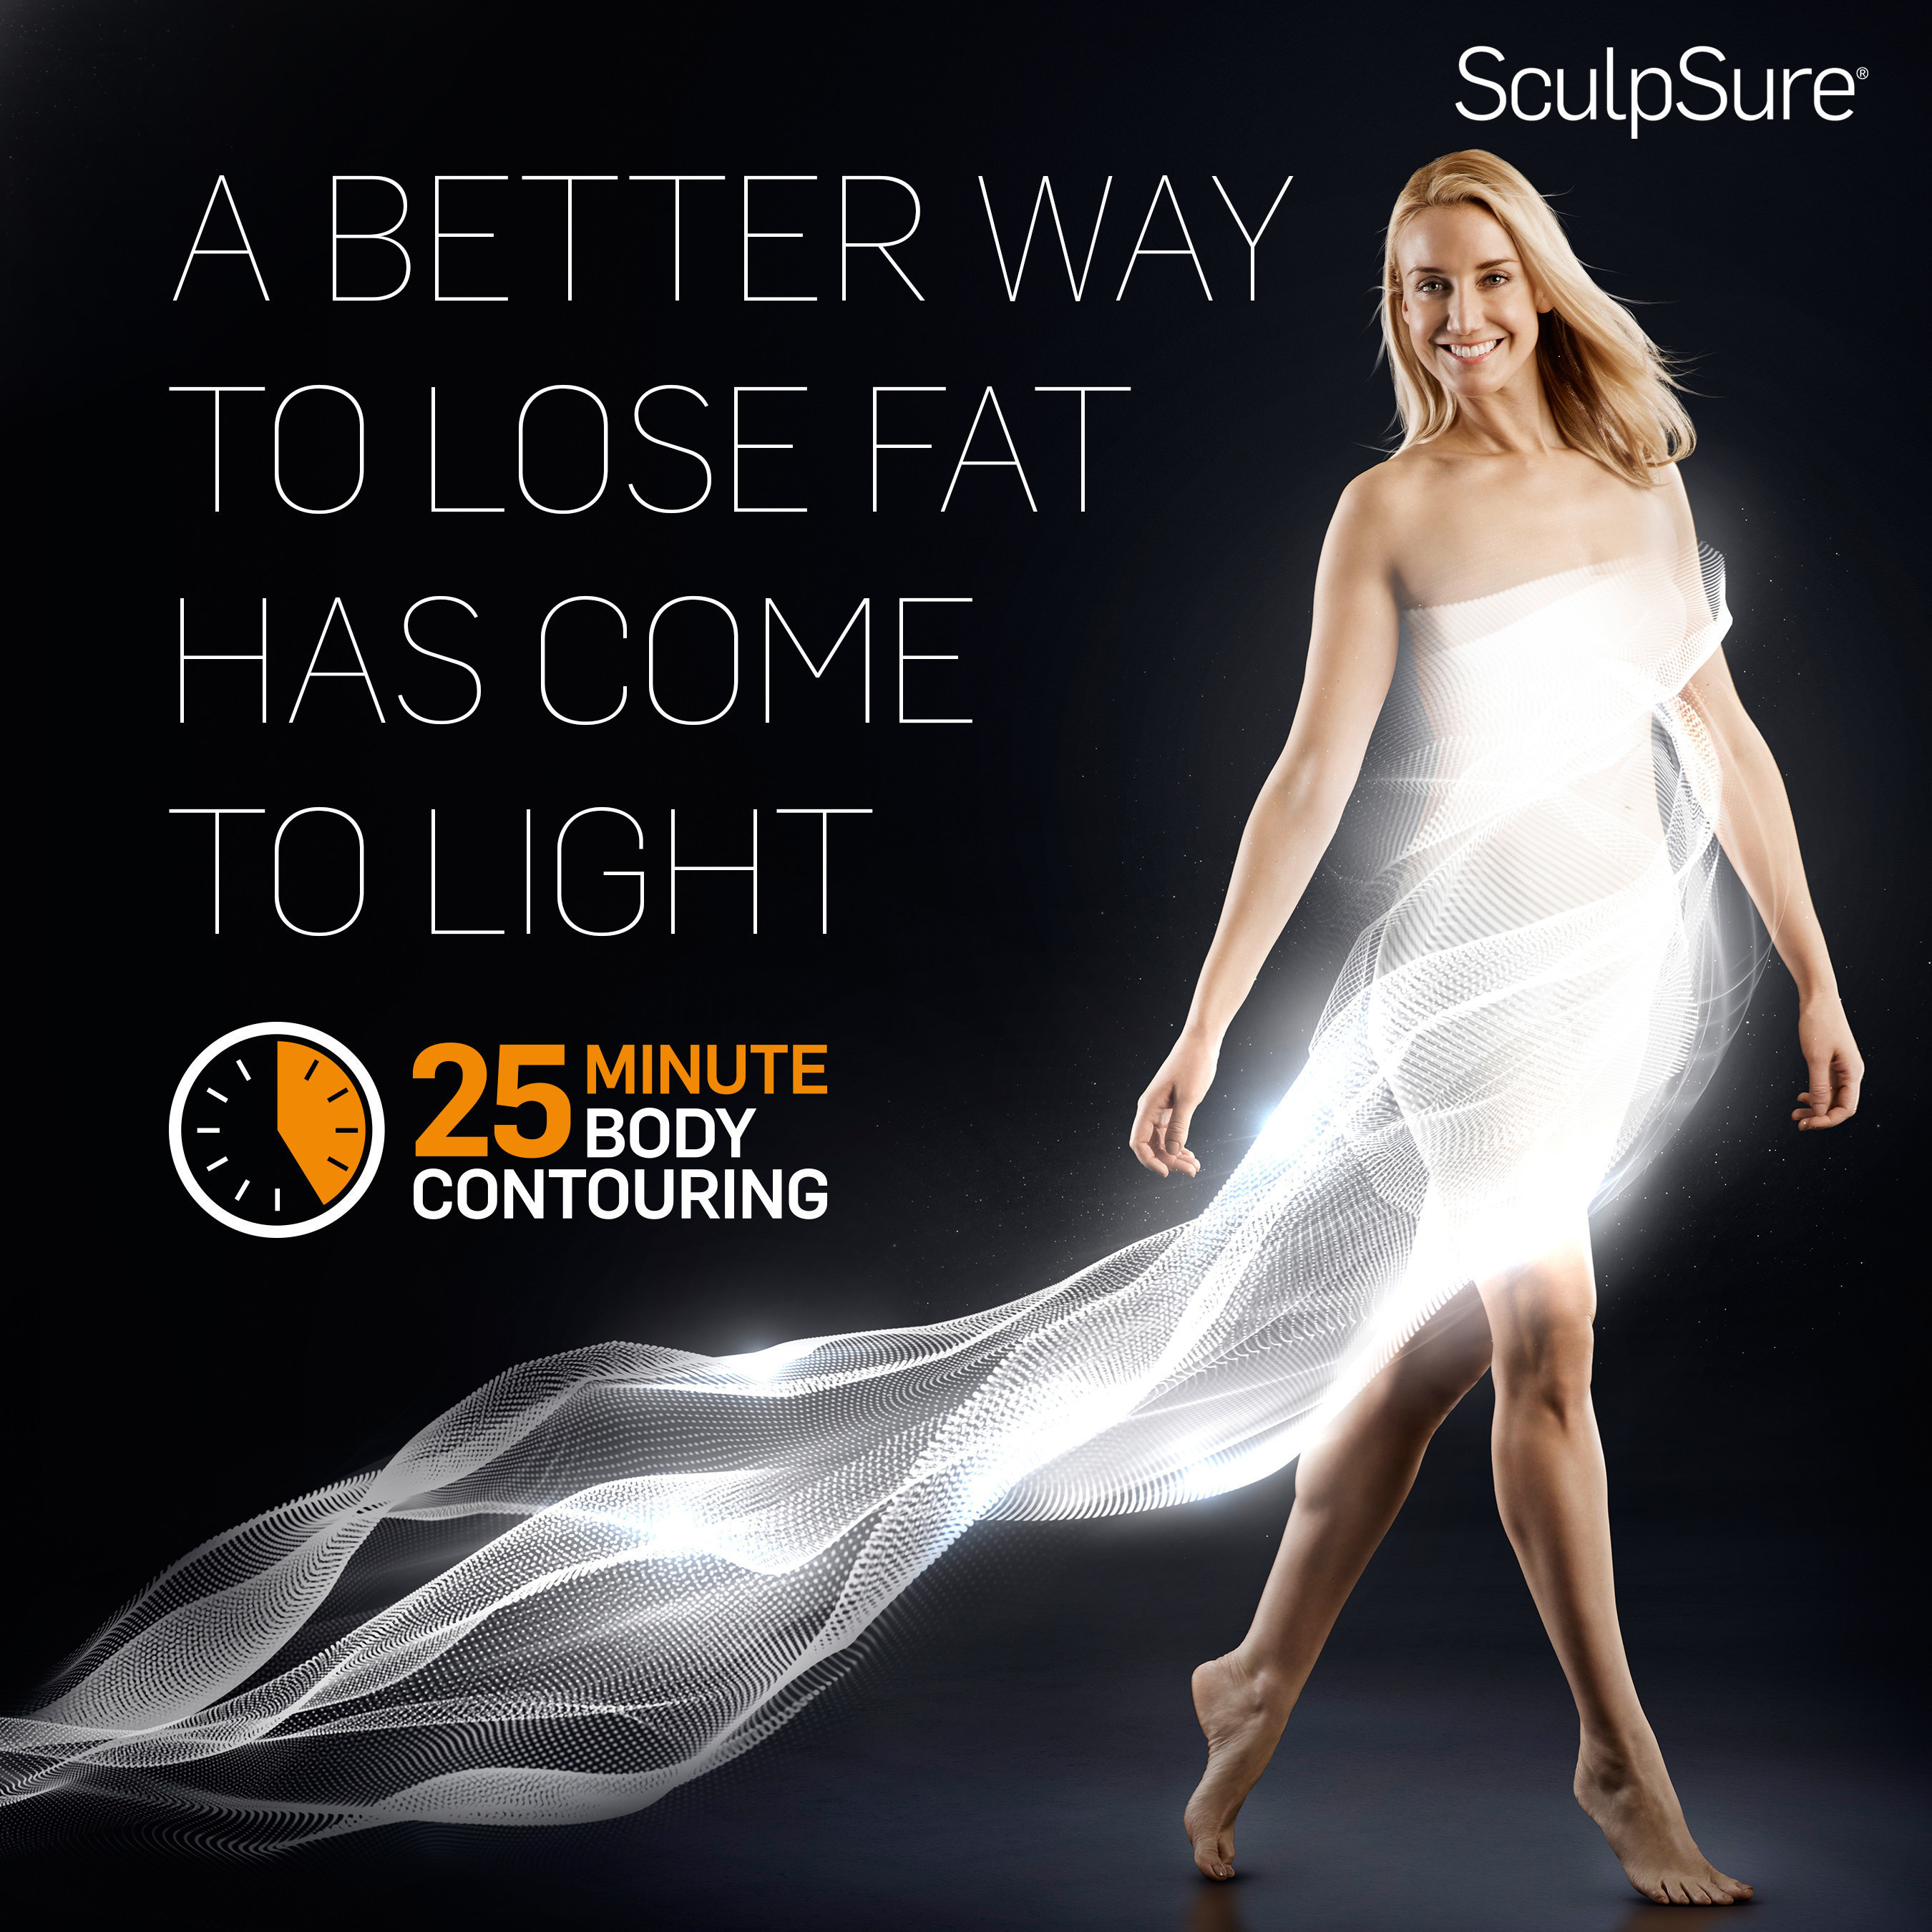 Light-based body contouring that treats stubborn fat without downtime. www.sculpsure.com